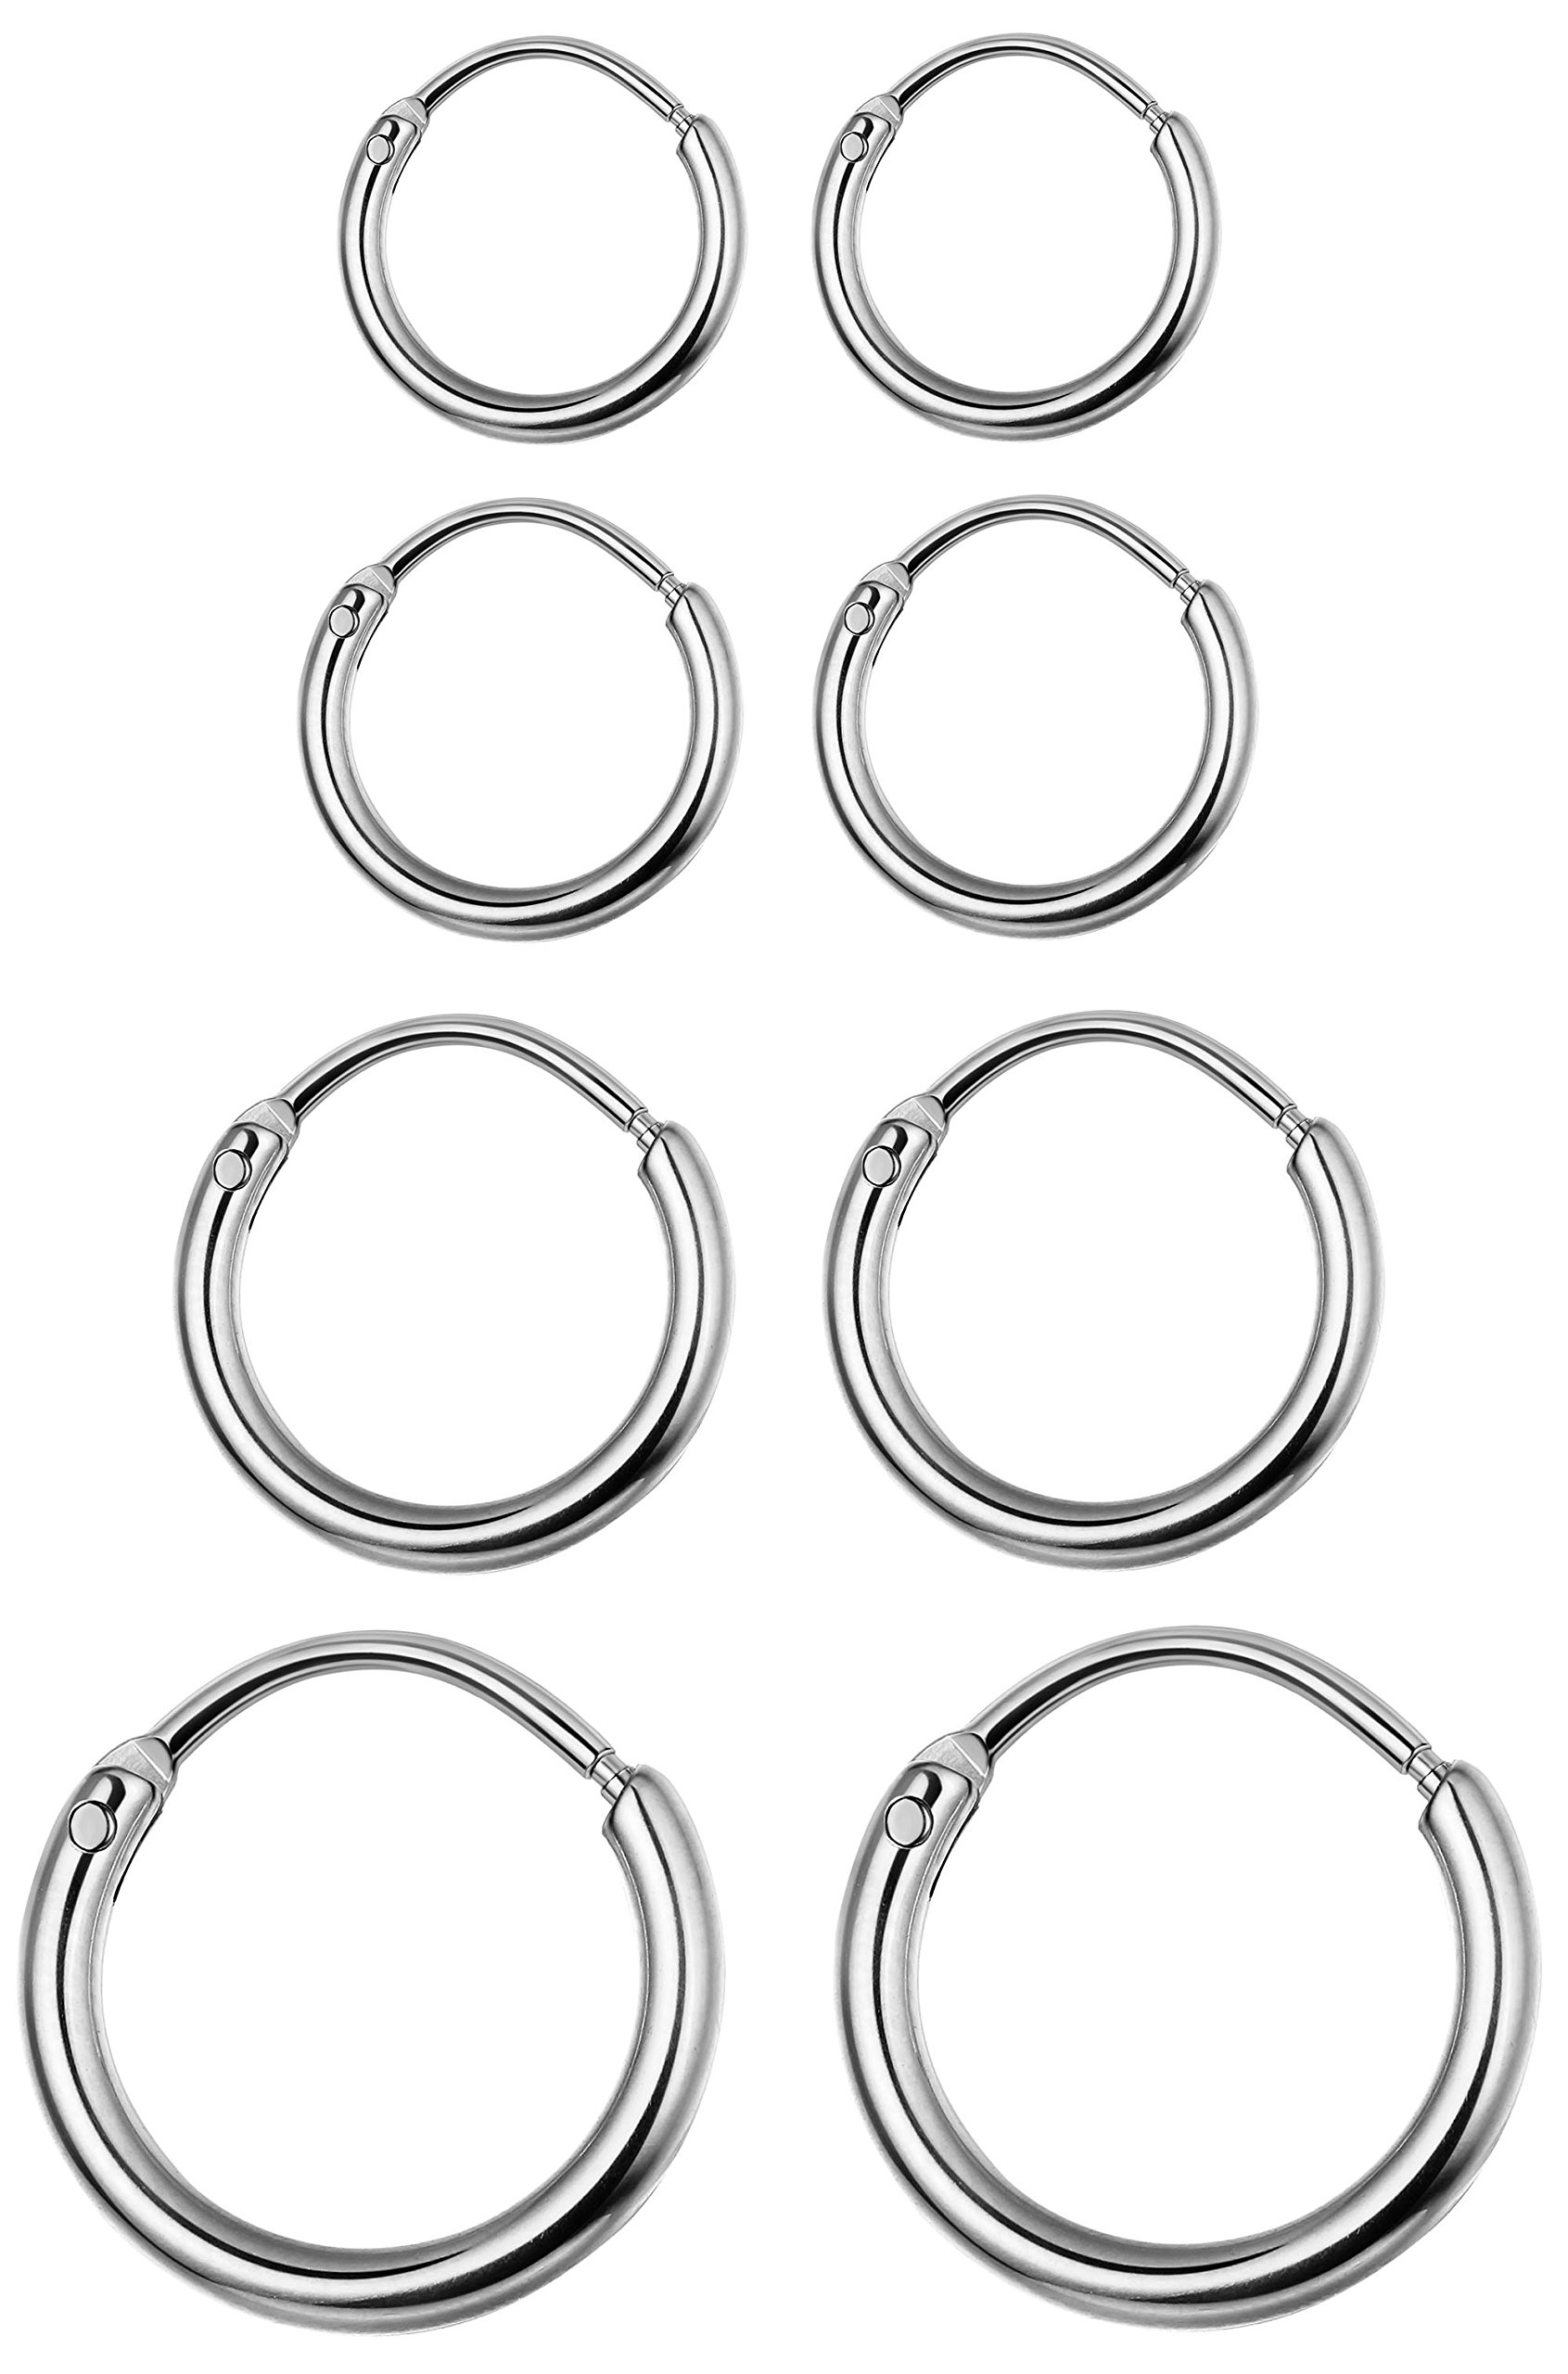 LOYALLOOK 4 Pairs Stainless Steel Basic Small Large Endless Hoop Earrings Silver Golden Rose Tone Hoop Earrings 10-20MM Silver Tone